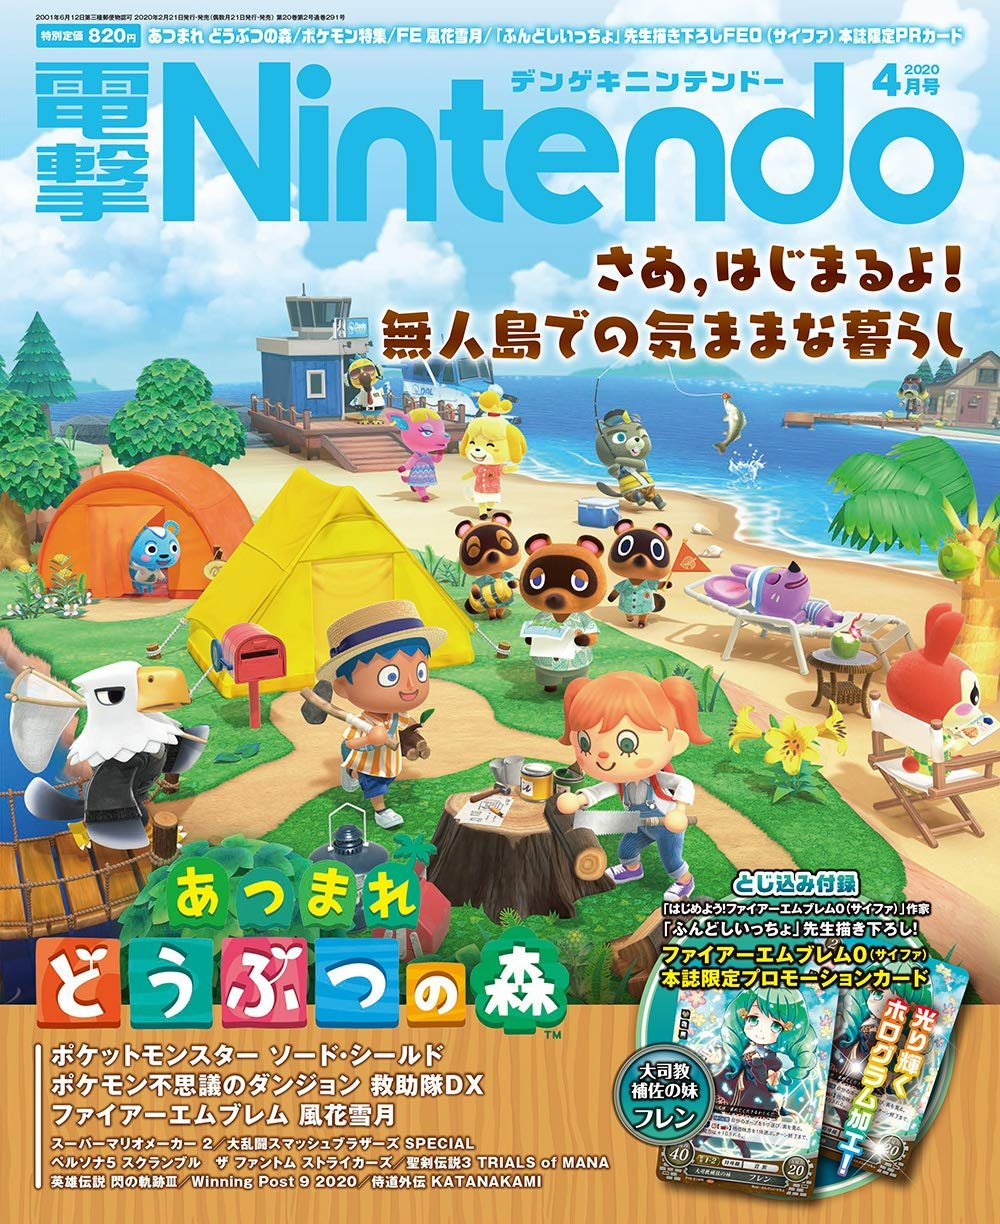 Dengeki Nintendo Issue 065 (April 2019)